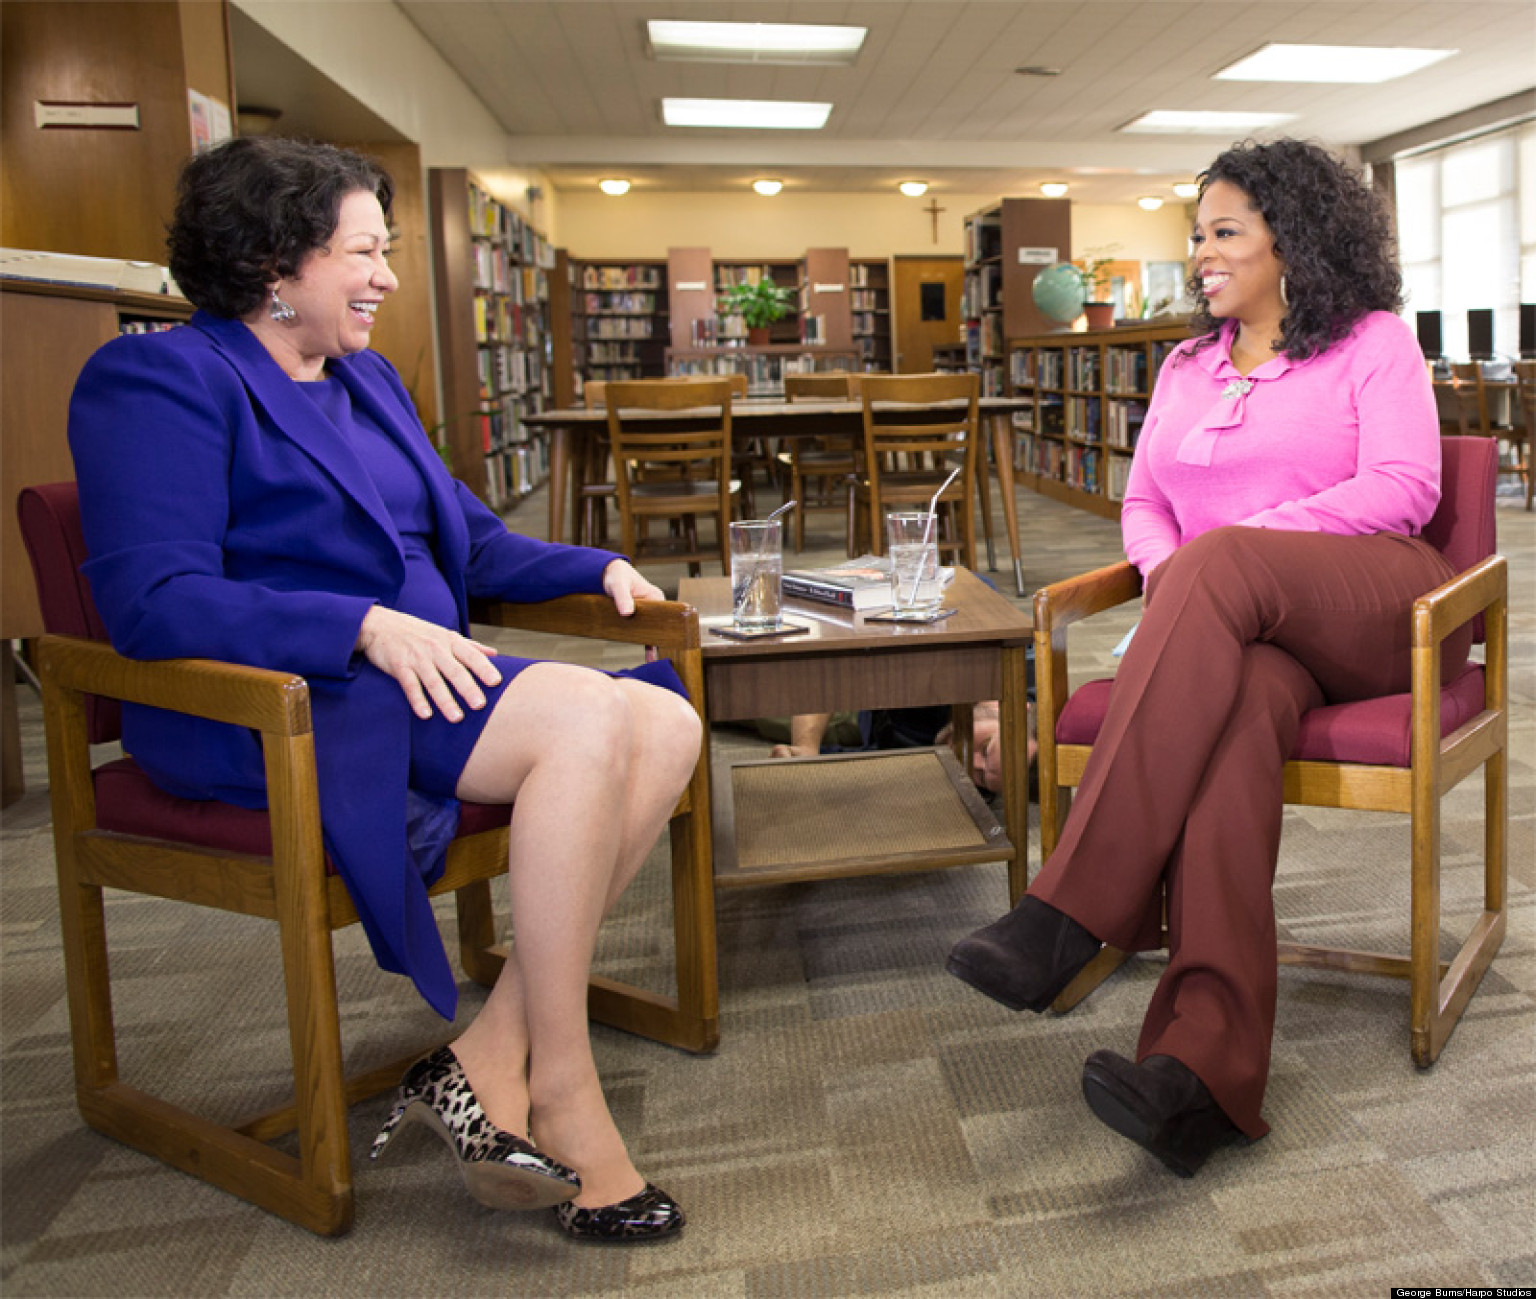 WATCH: How To Raise A Supreme Court Justice